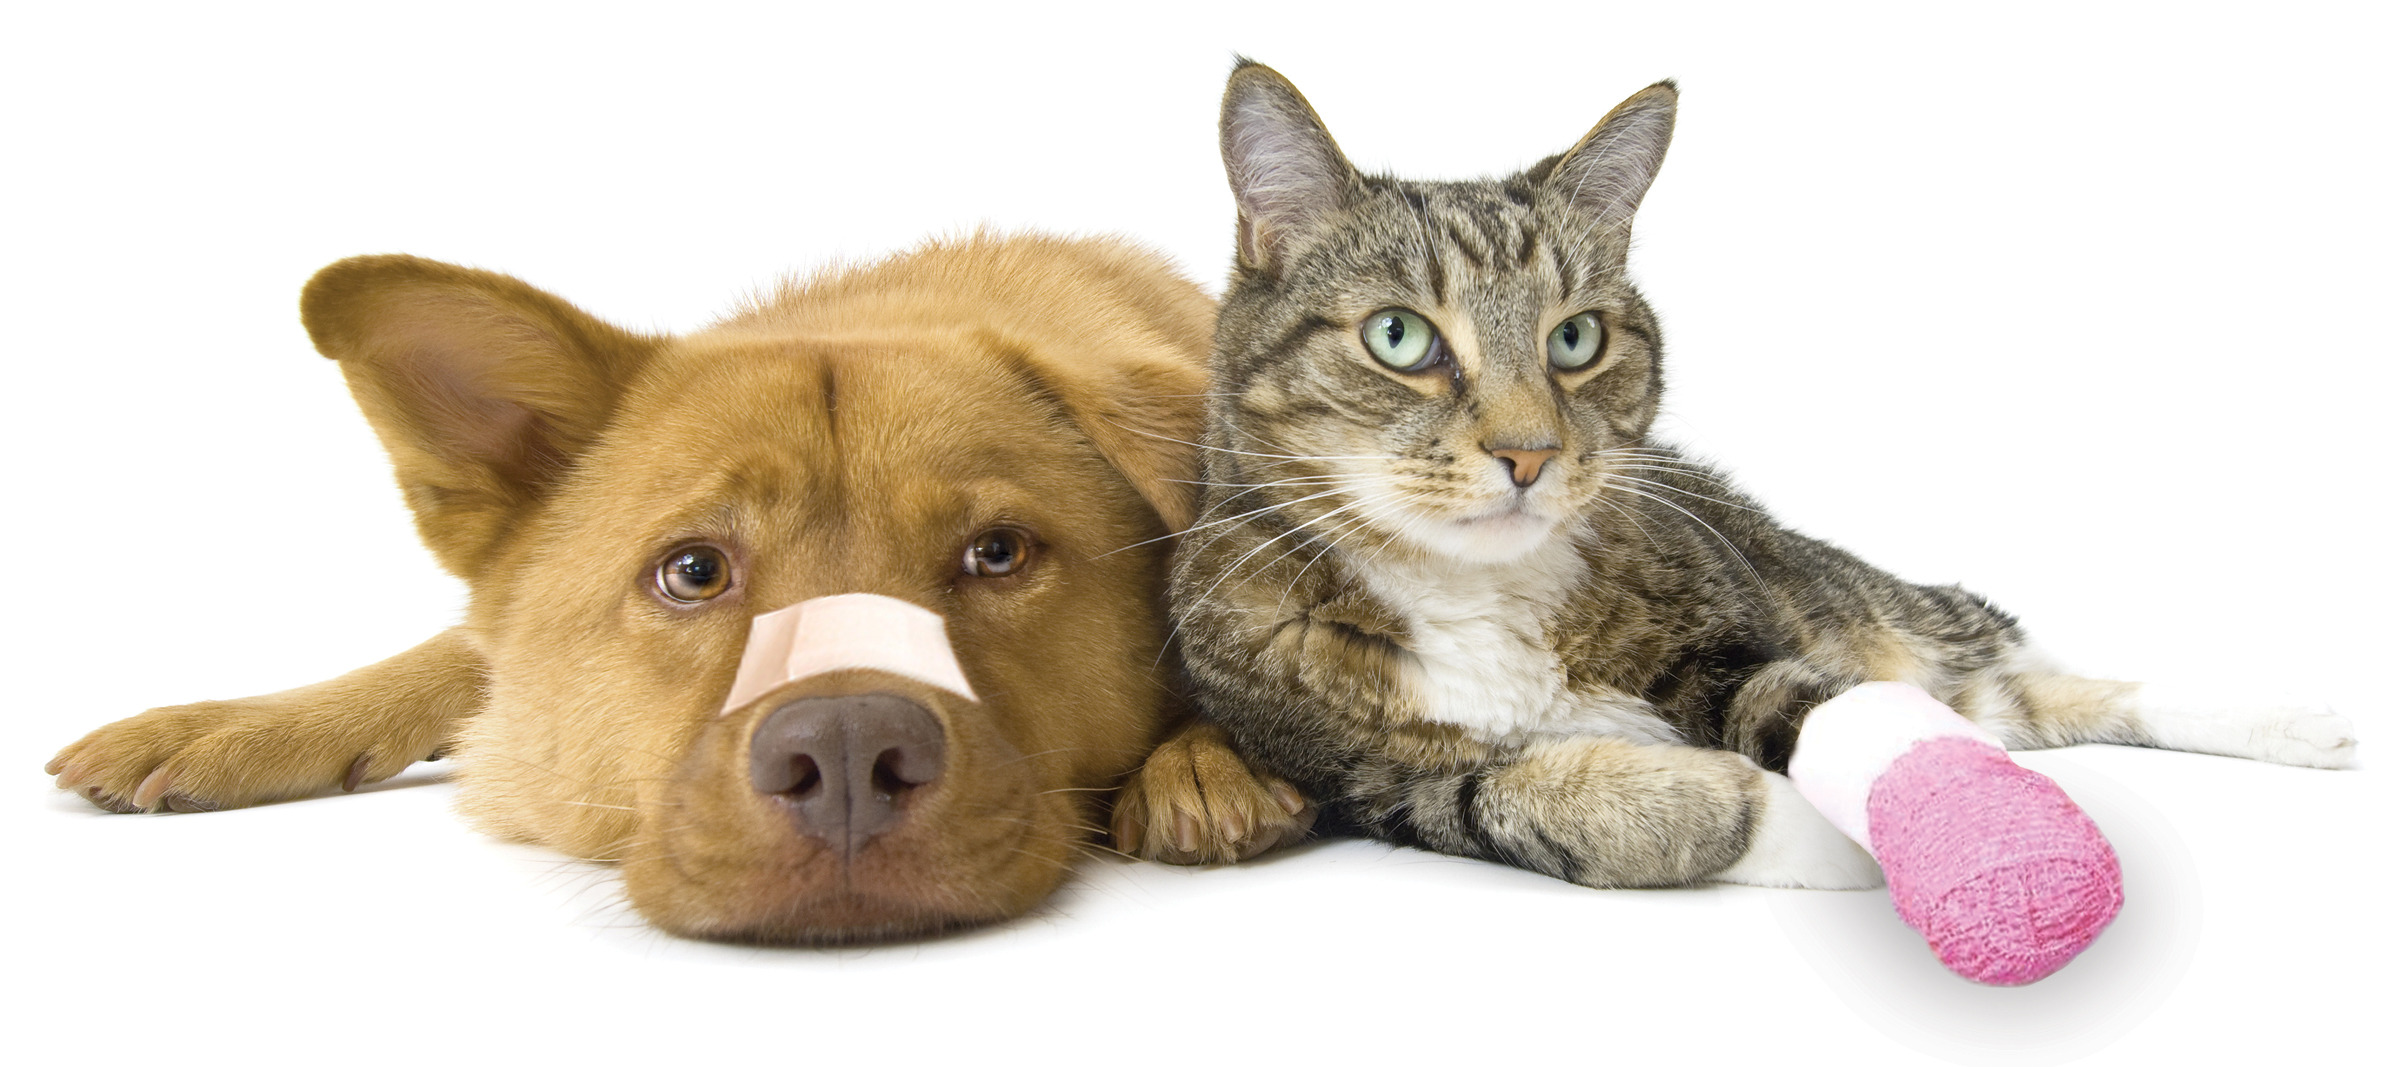 Cpr For Dogs And Cats